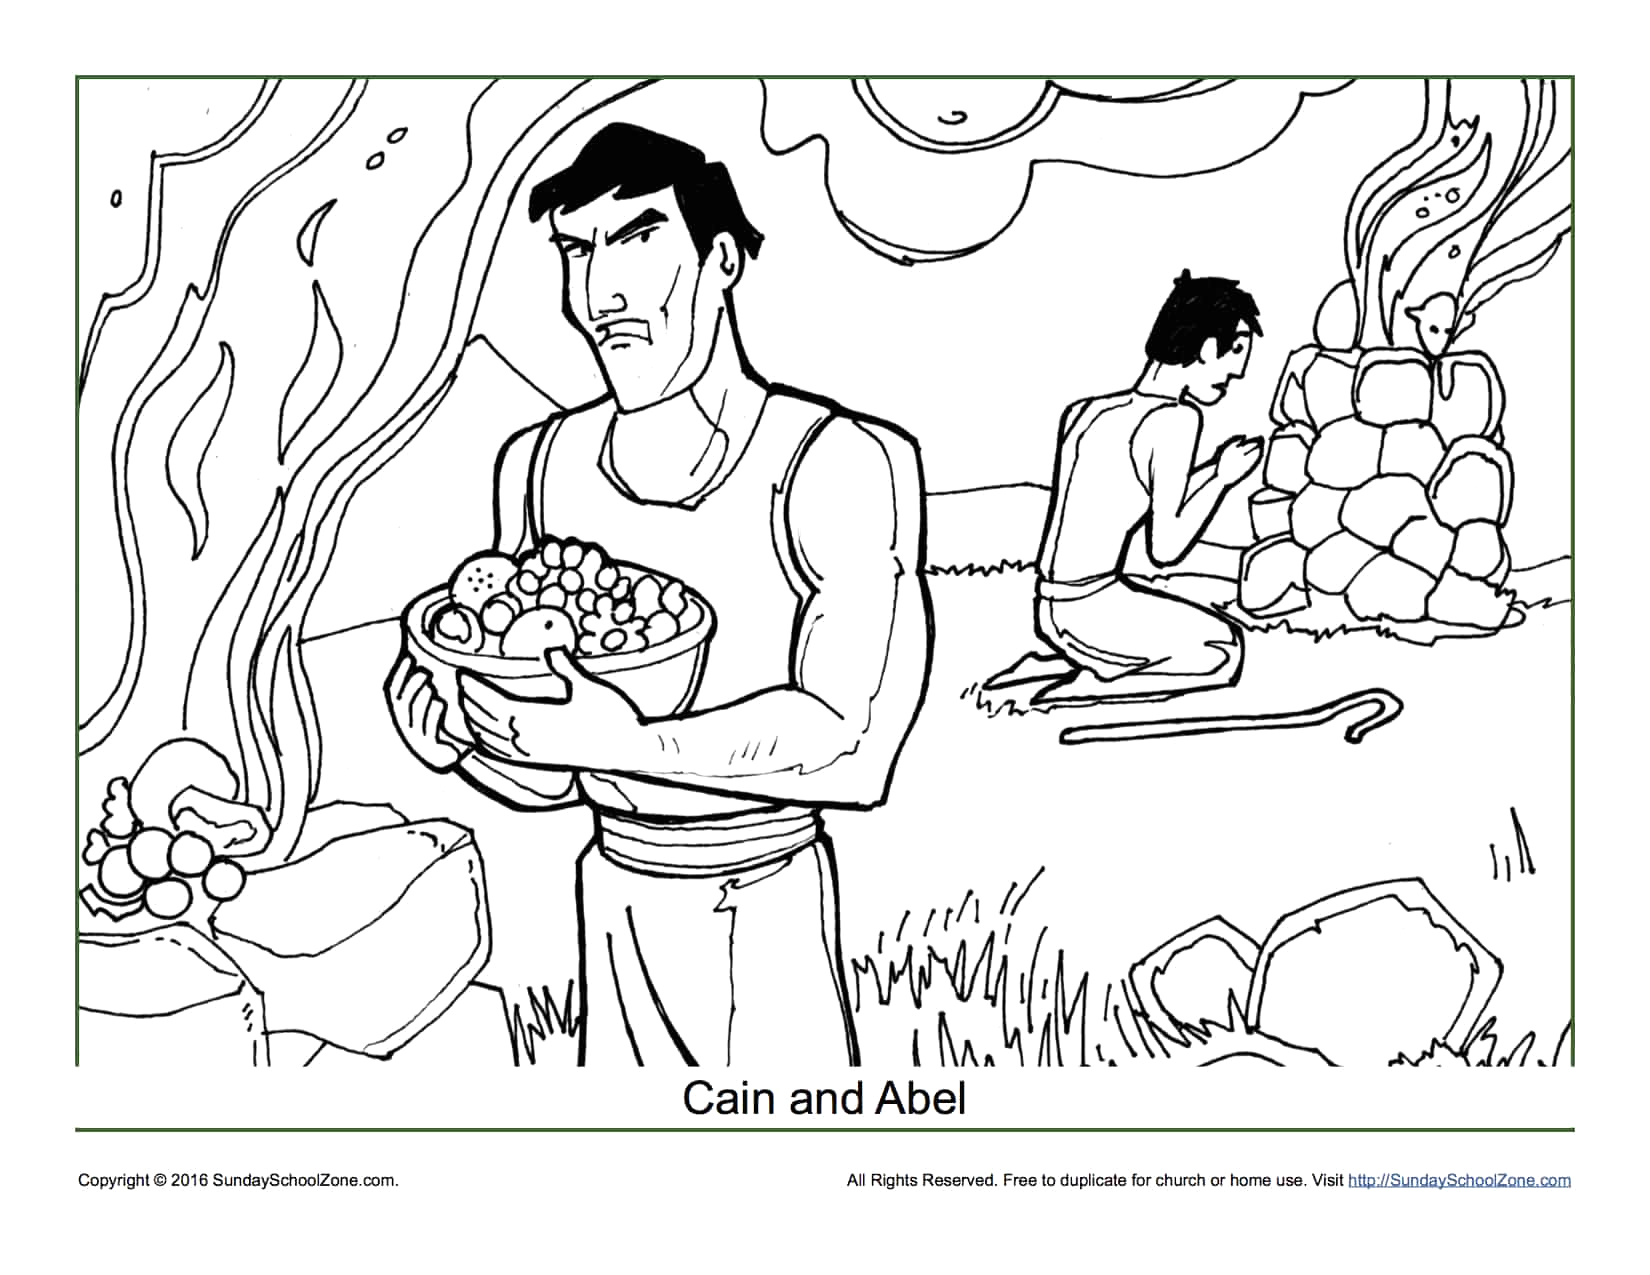 Cain and Abel Coloring Pages for Kids Cain and Abel Coloring Page Children S Bible Activities